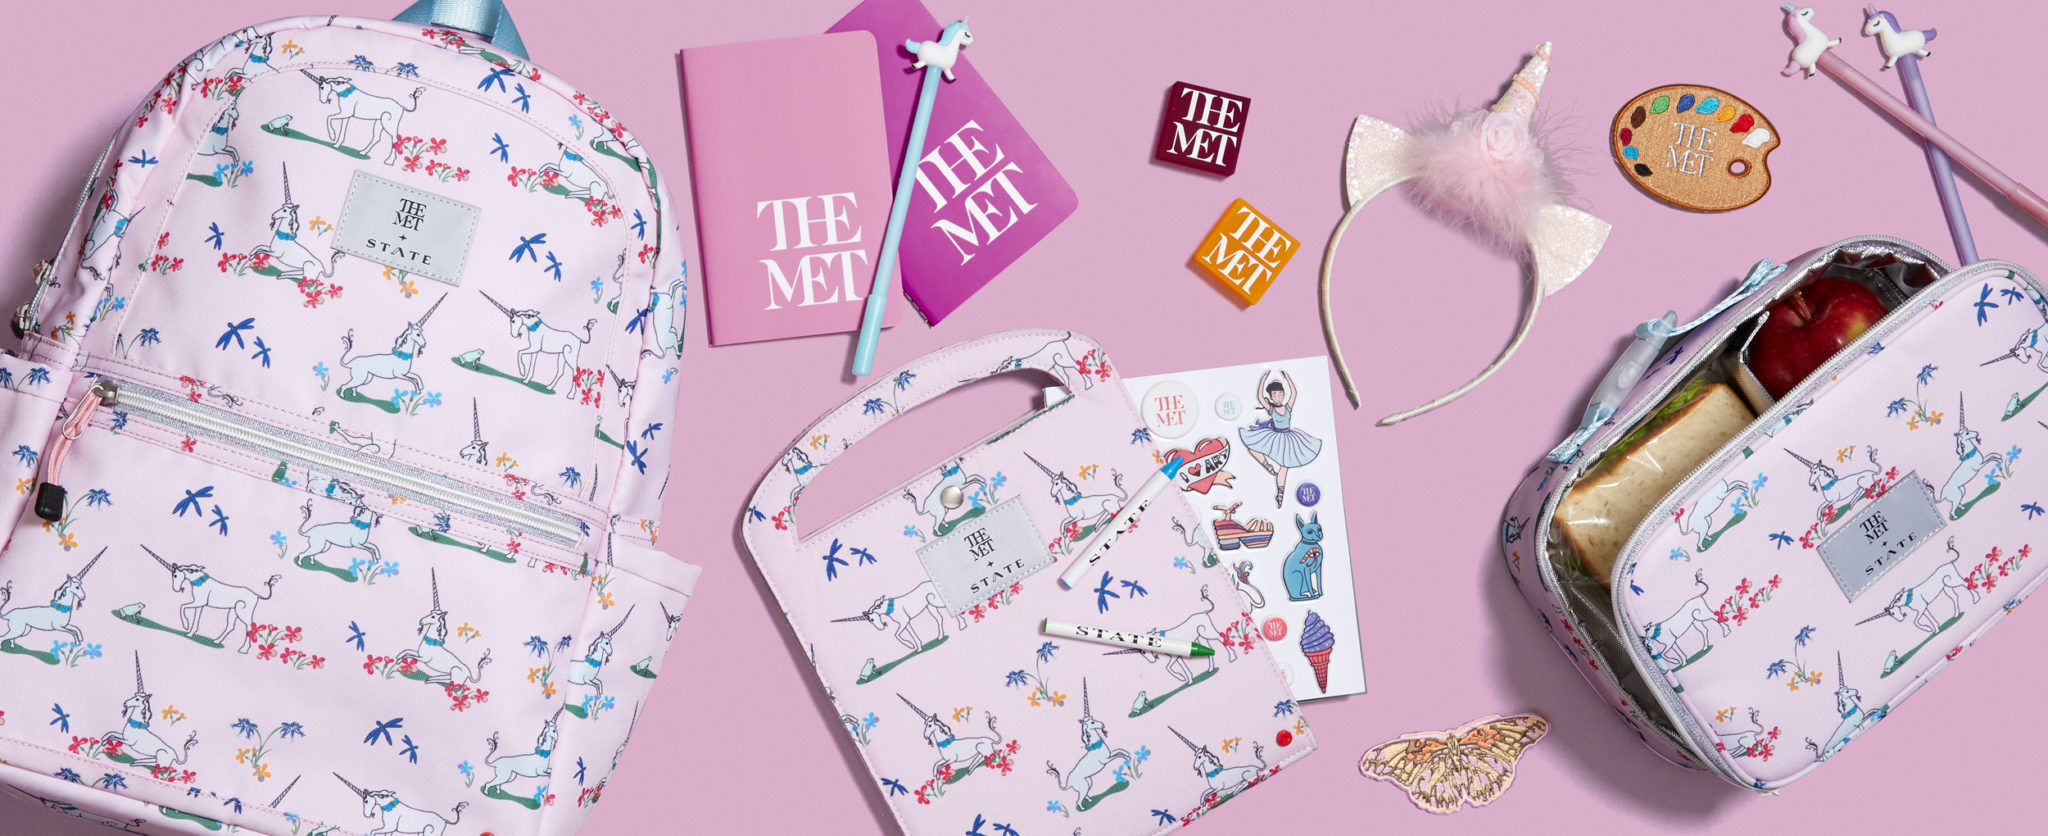 e-commerce header of the Met x State collaboration with unicorn backpack, lunch box, art folio, and supplies on pink background